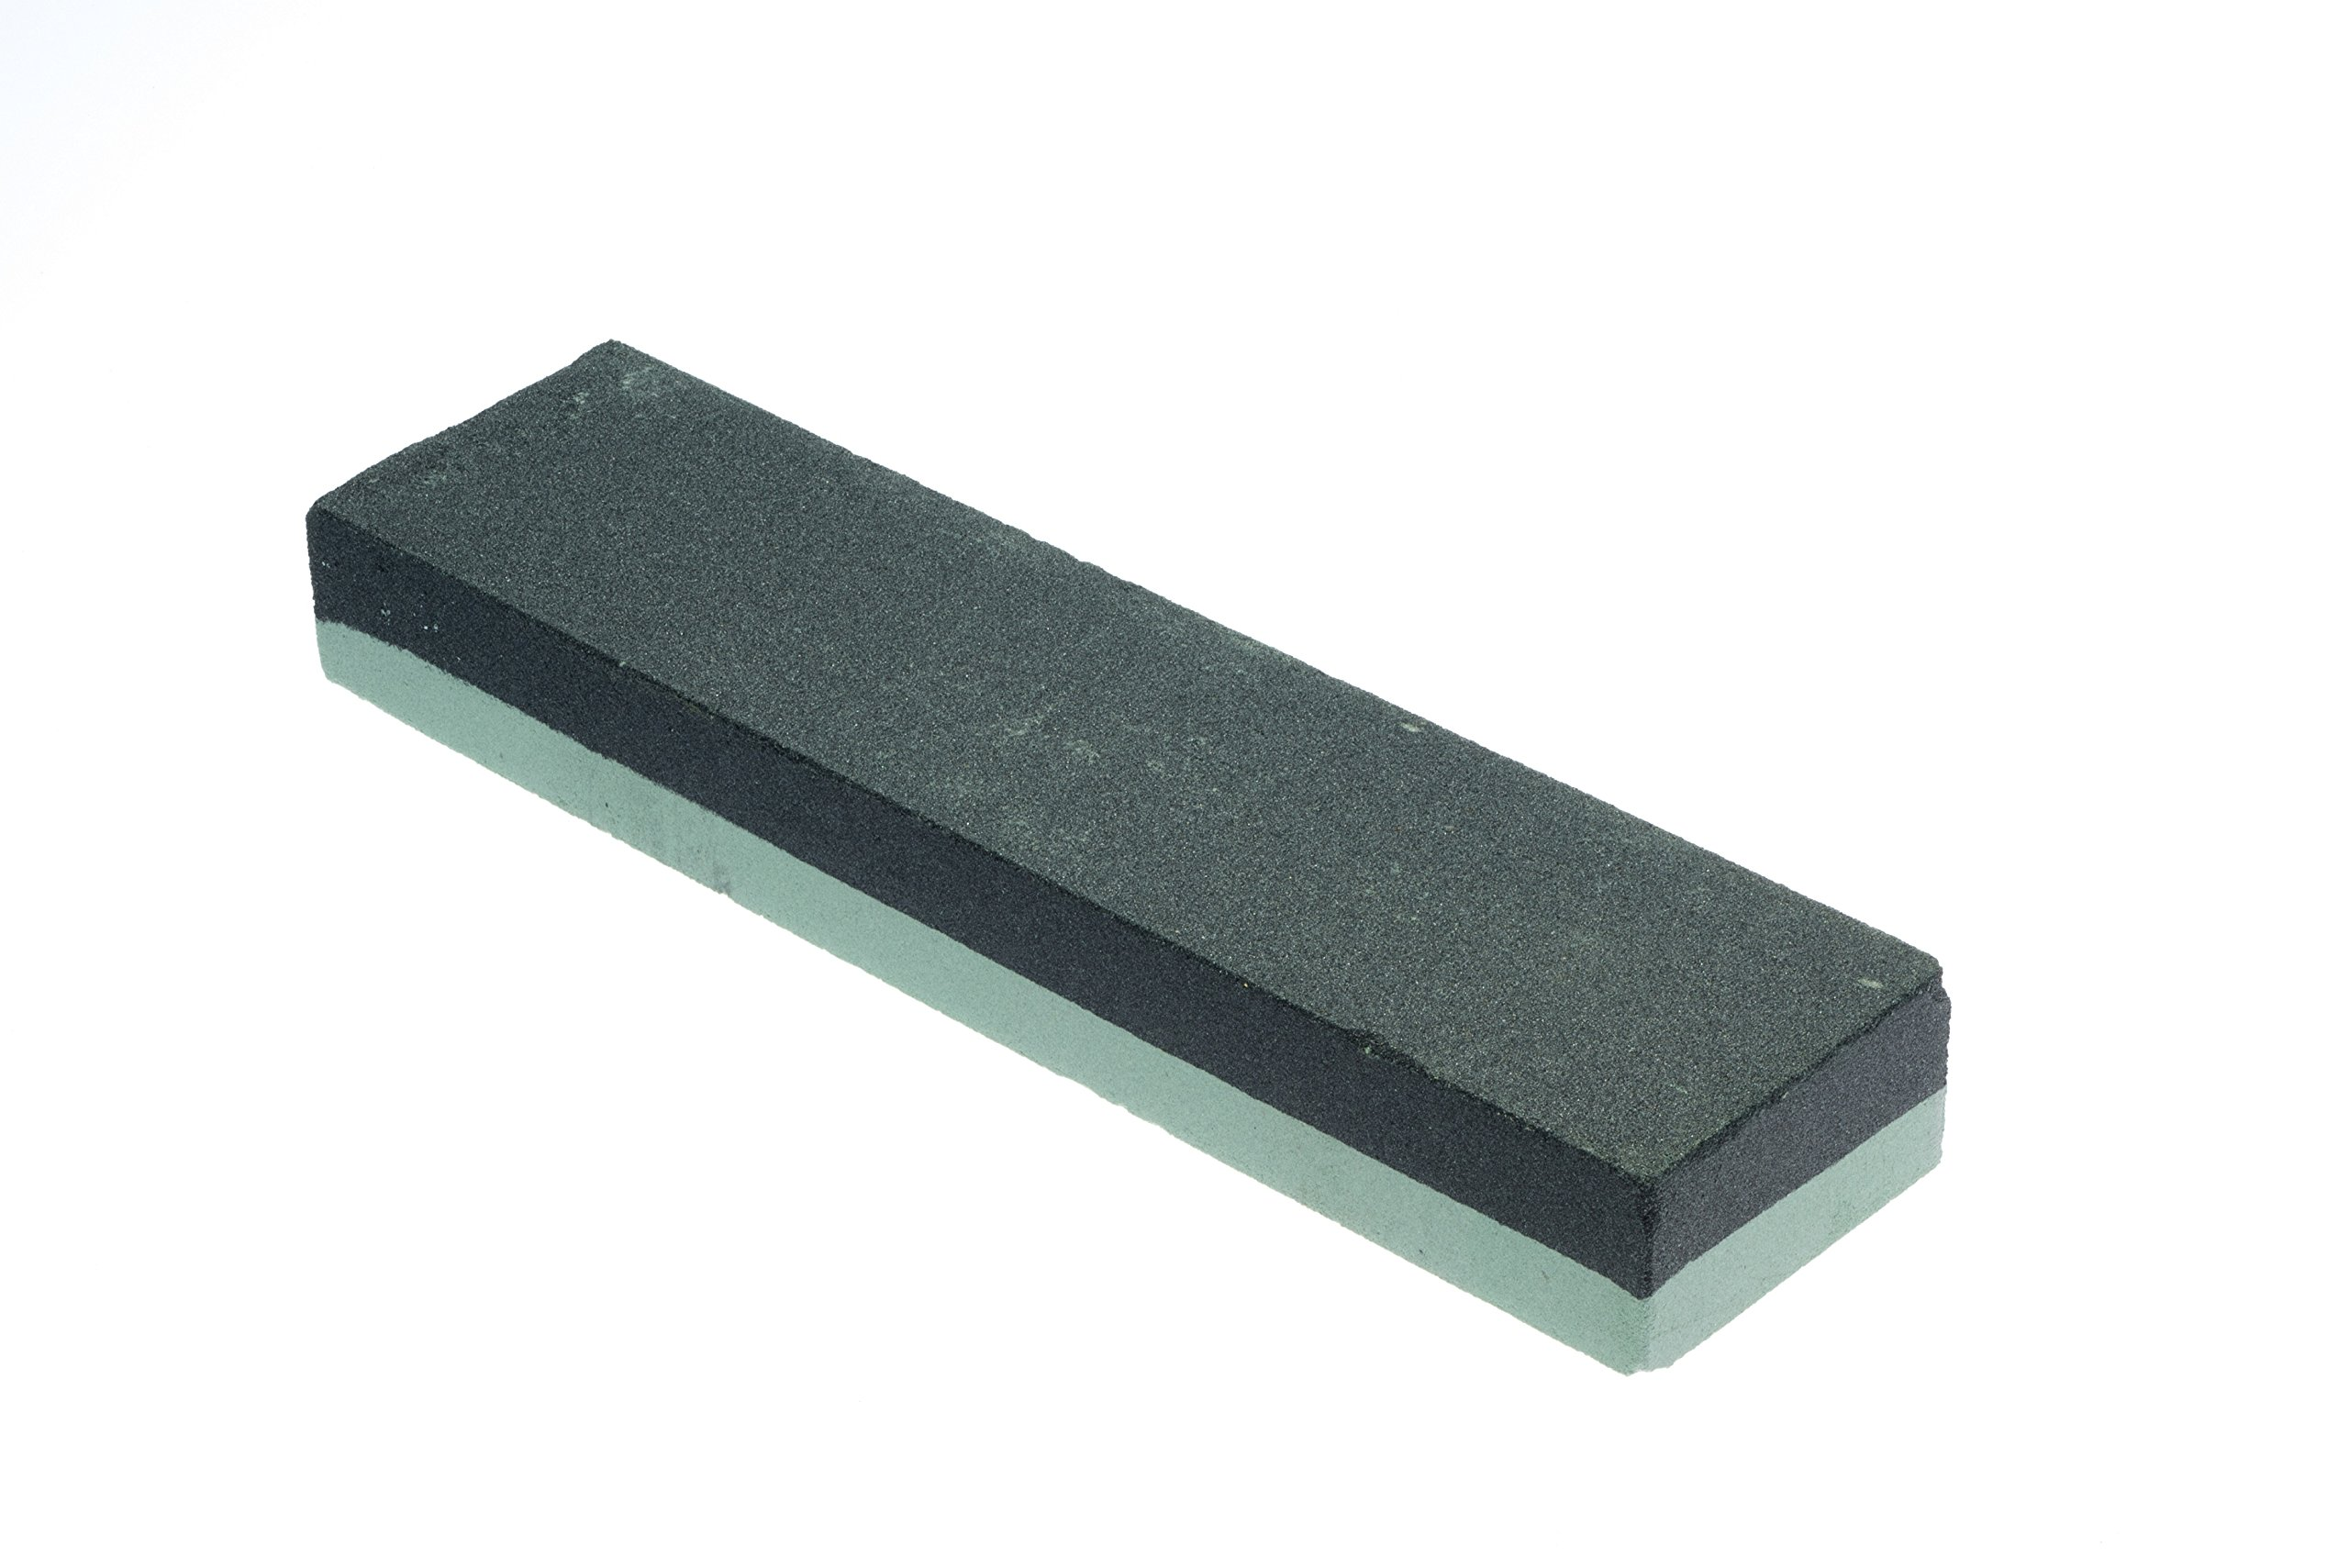 SE SS73BG 8'' Silicon Carbide Double-Sided Whetstone, Grits 180 and 240